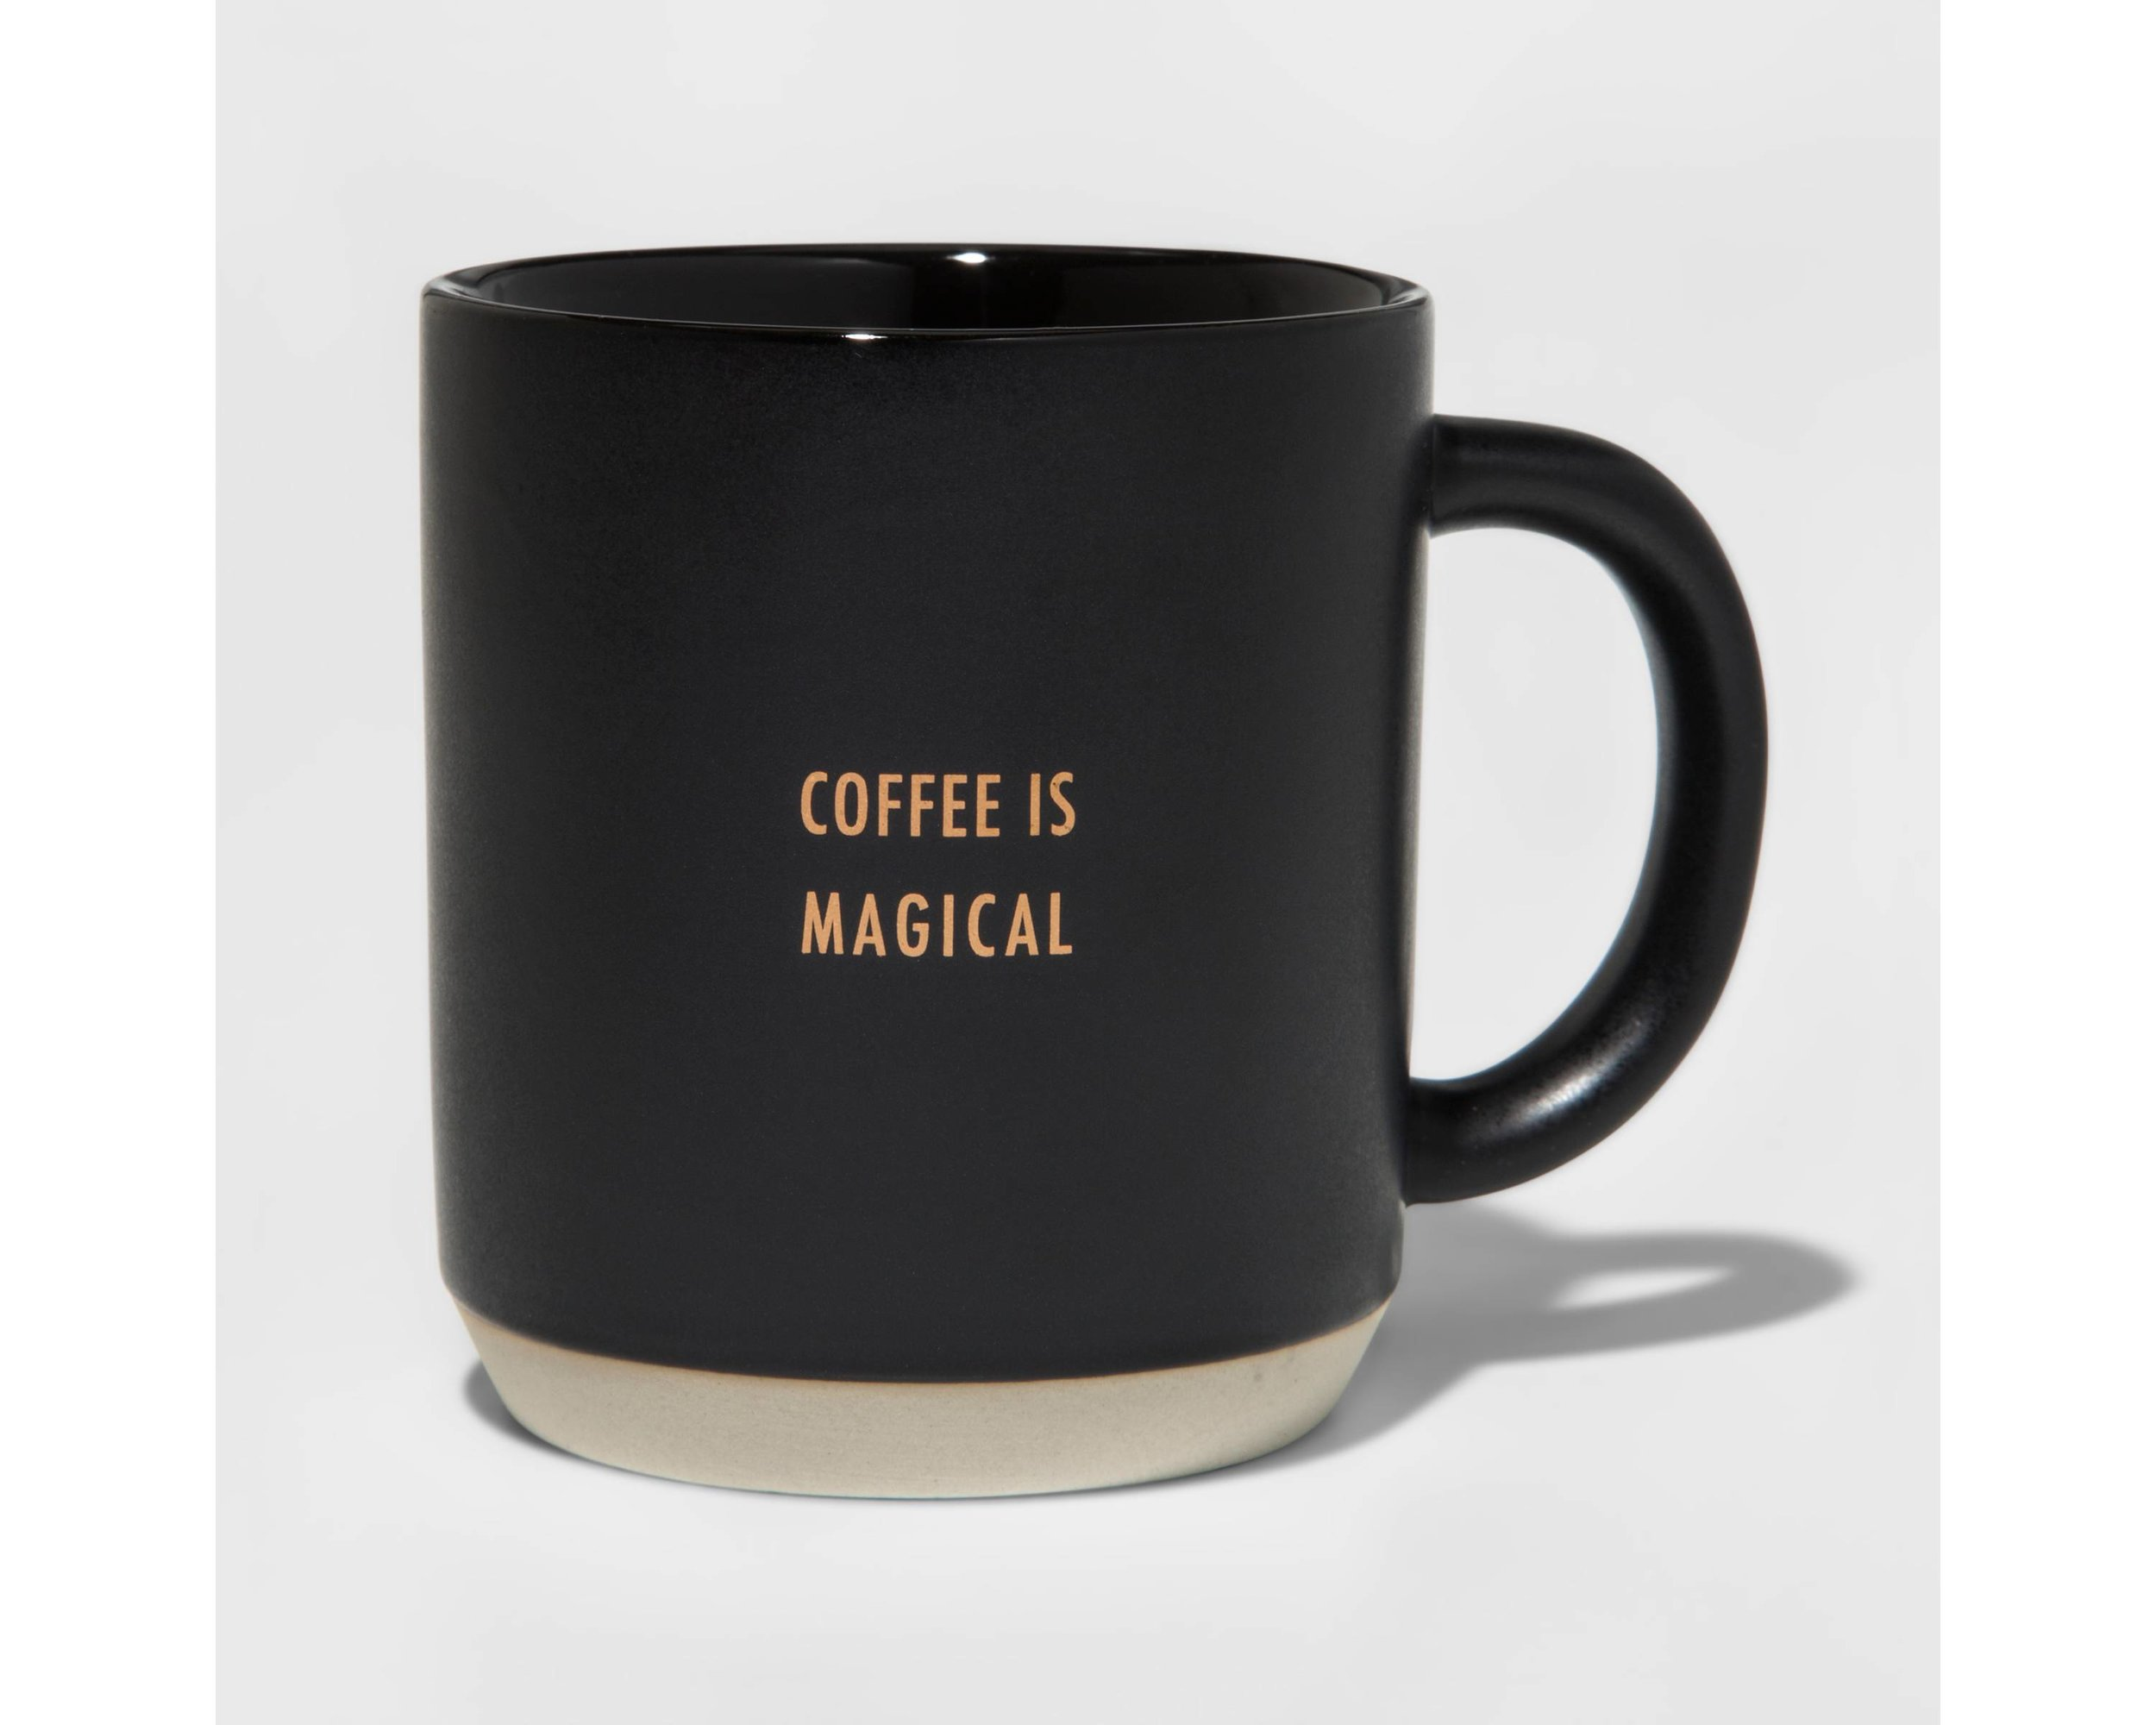 COFFEE MUGS... - because they need something cute to put their coffee in